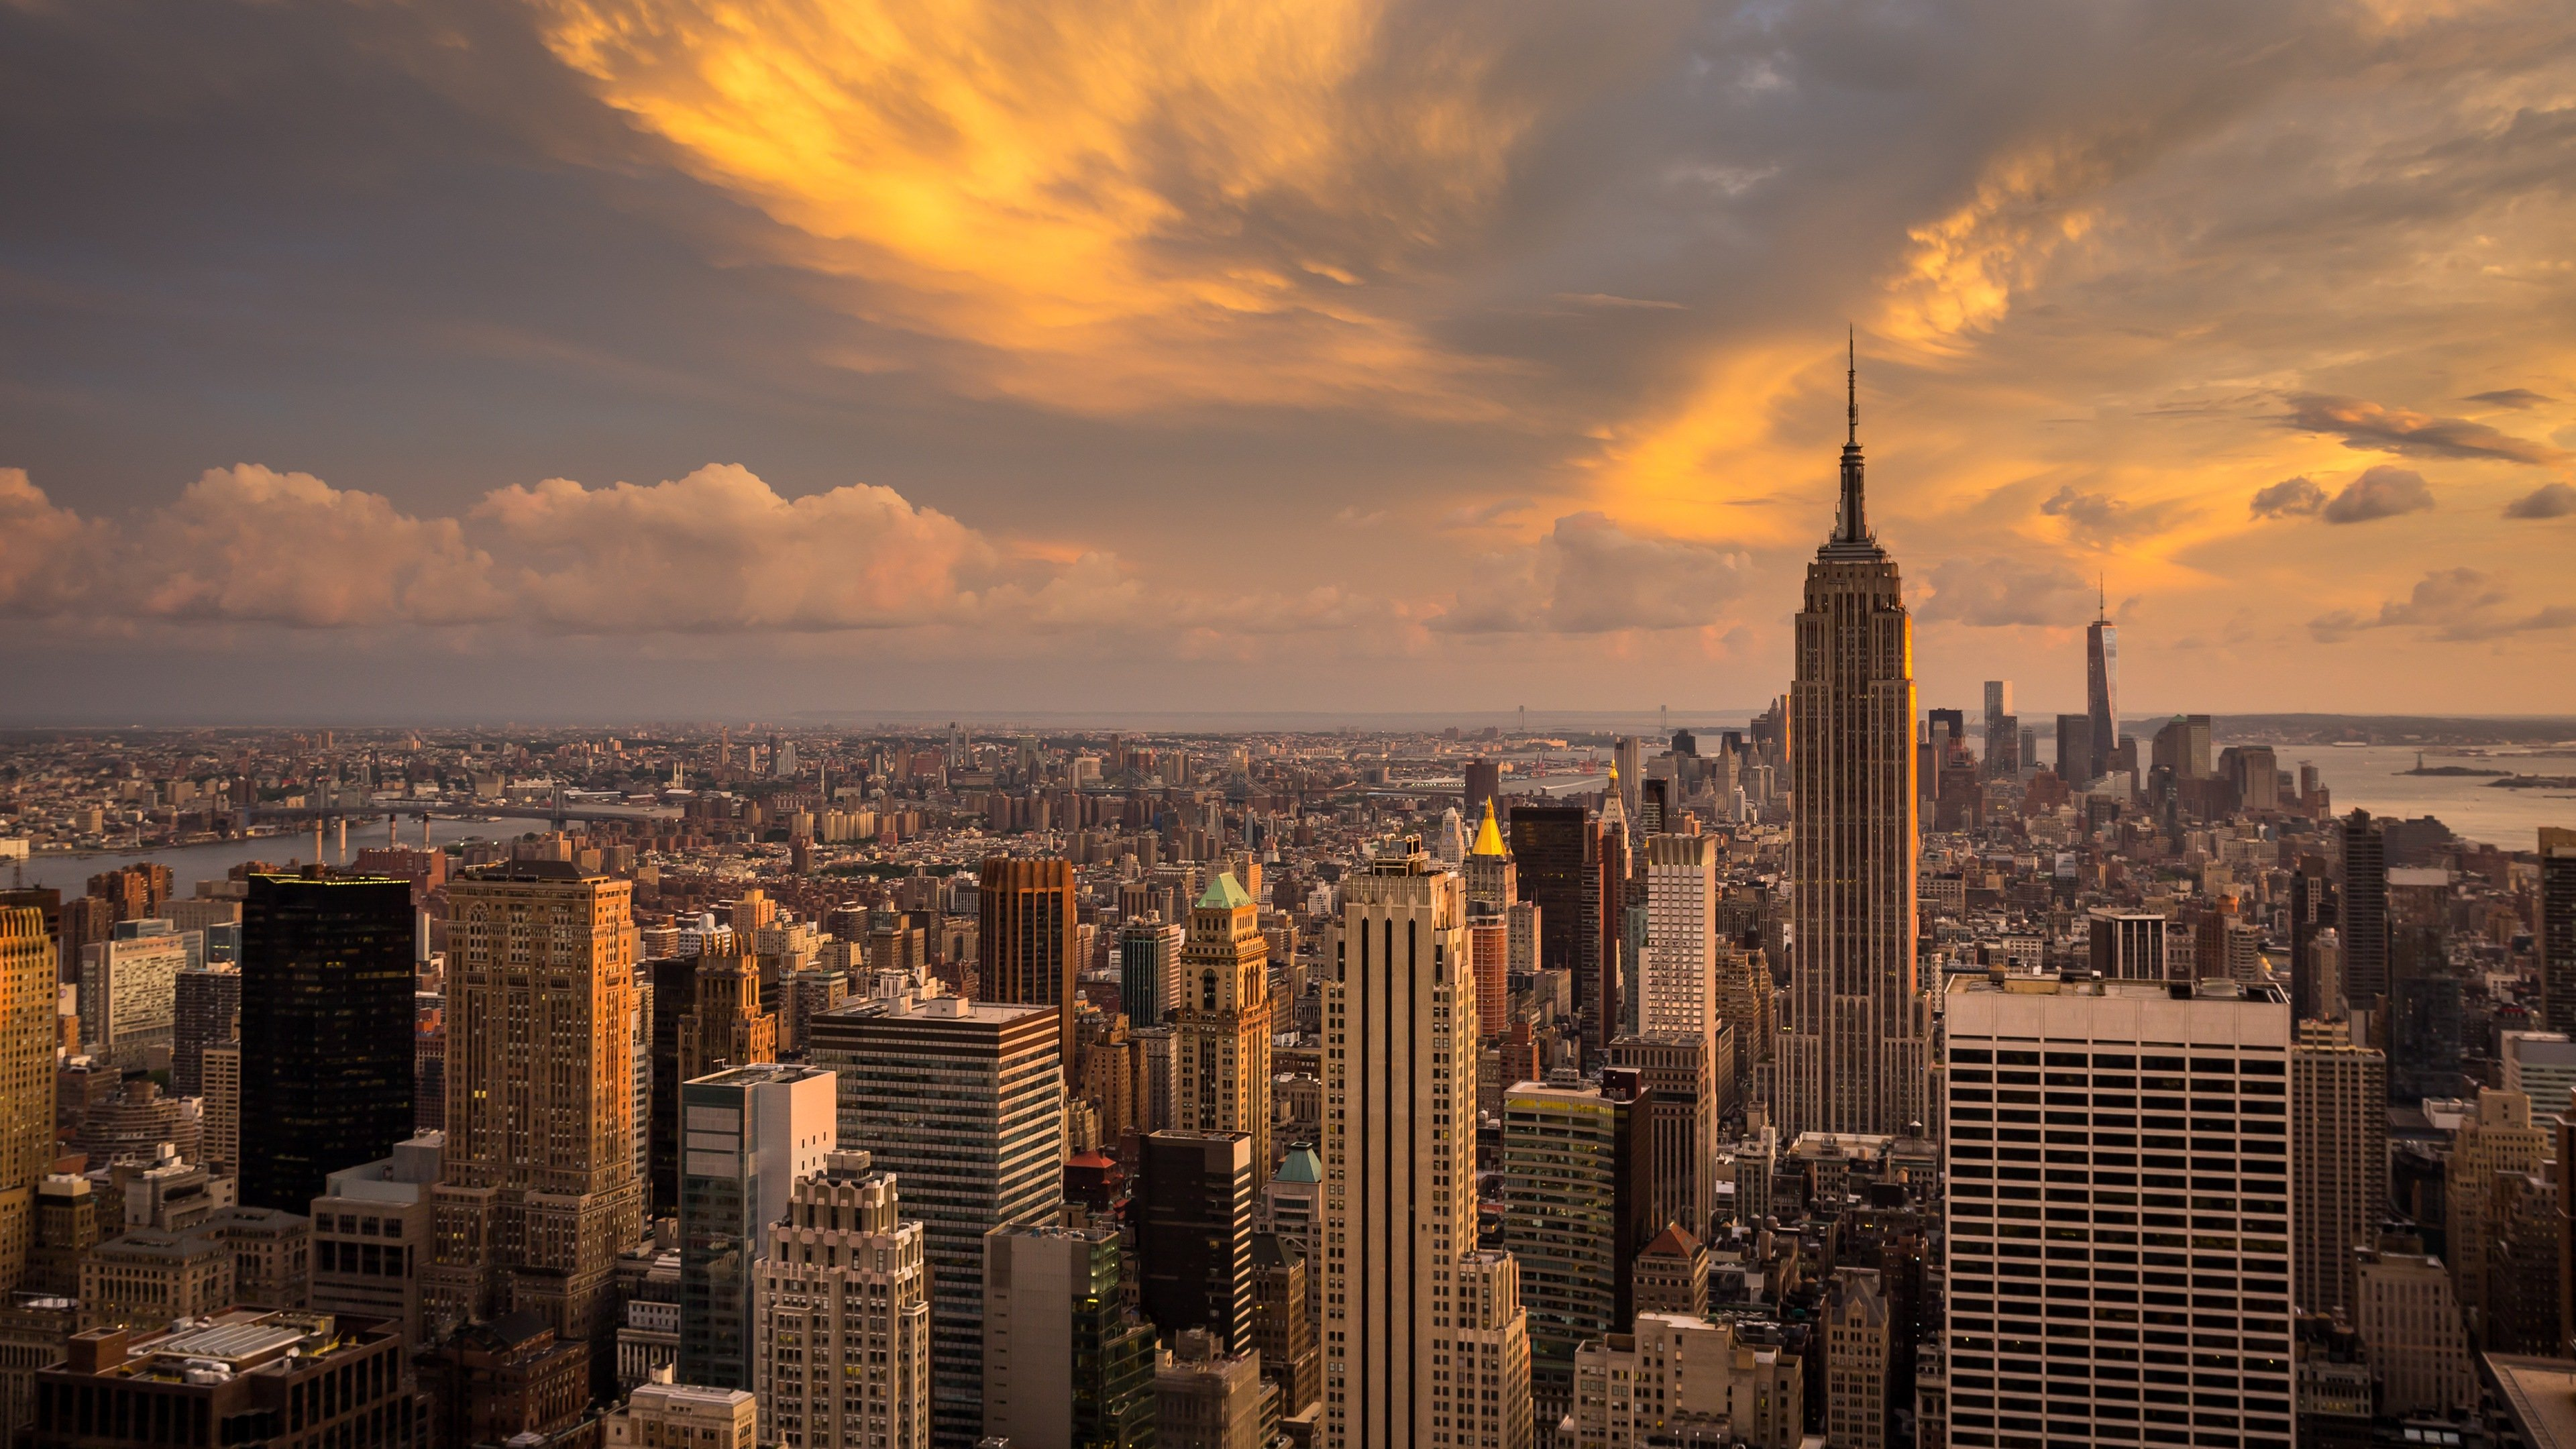 4k city wallpaper wallpapersafari for Immagini new york hd